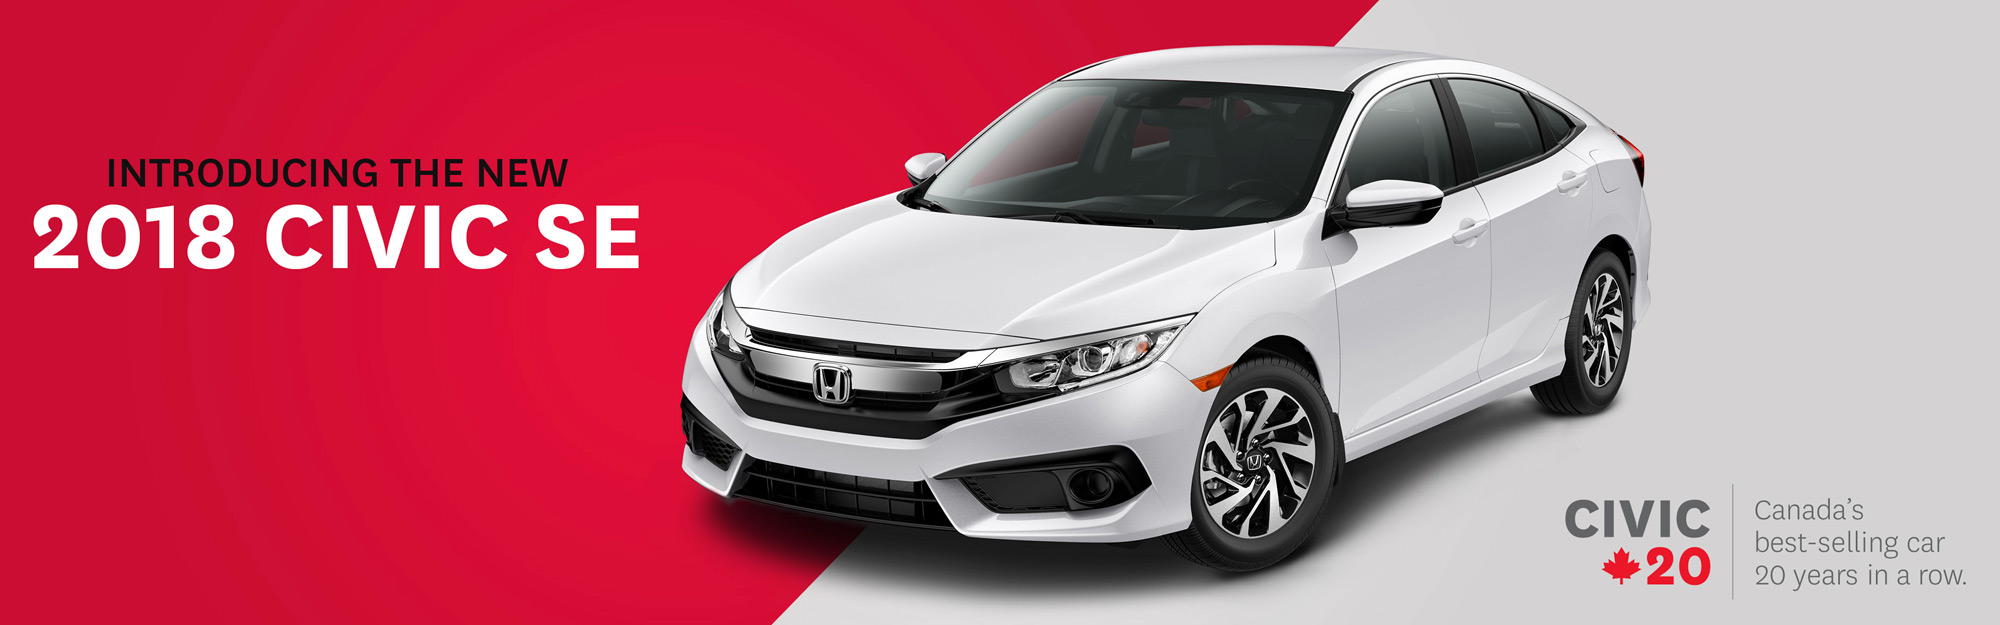 donor for release generous nca car christmas takes honda toys with en wish newsdetails profile spread home and hundred holiday annual lsm cheer civic chum dealers canada ontario the news sedan ex collected thirtysix